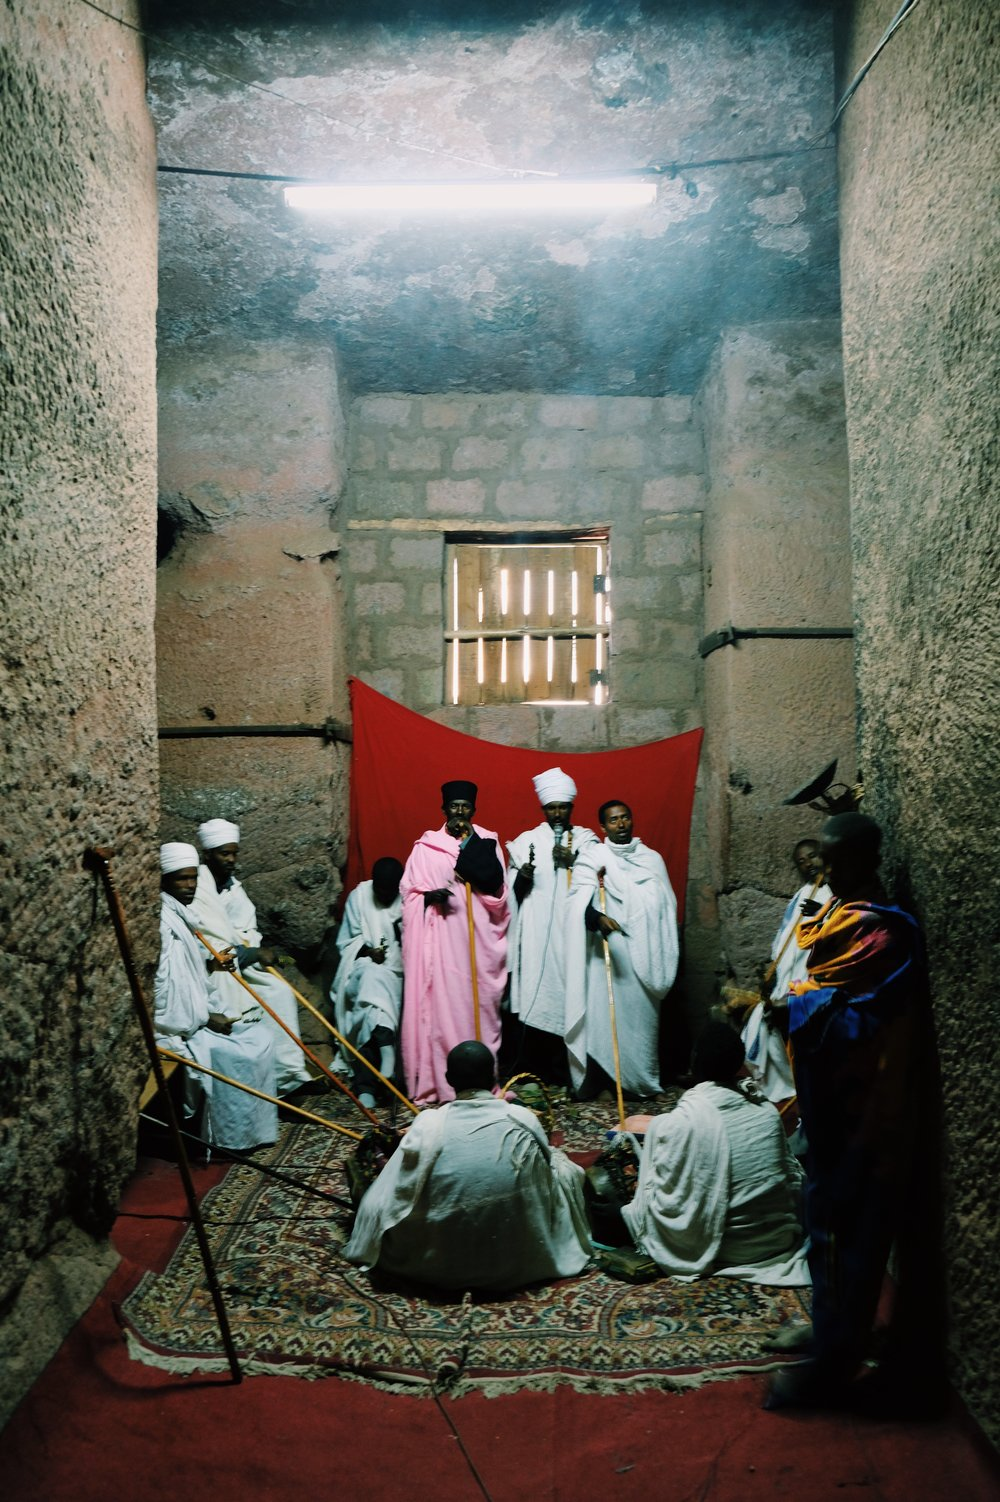 Priest and Monks chanting in Lalibela, Ethiopia by Joost Bastmeijer.jpeg